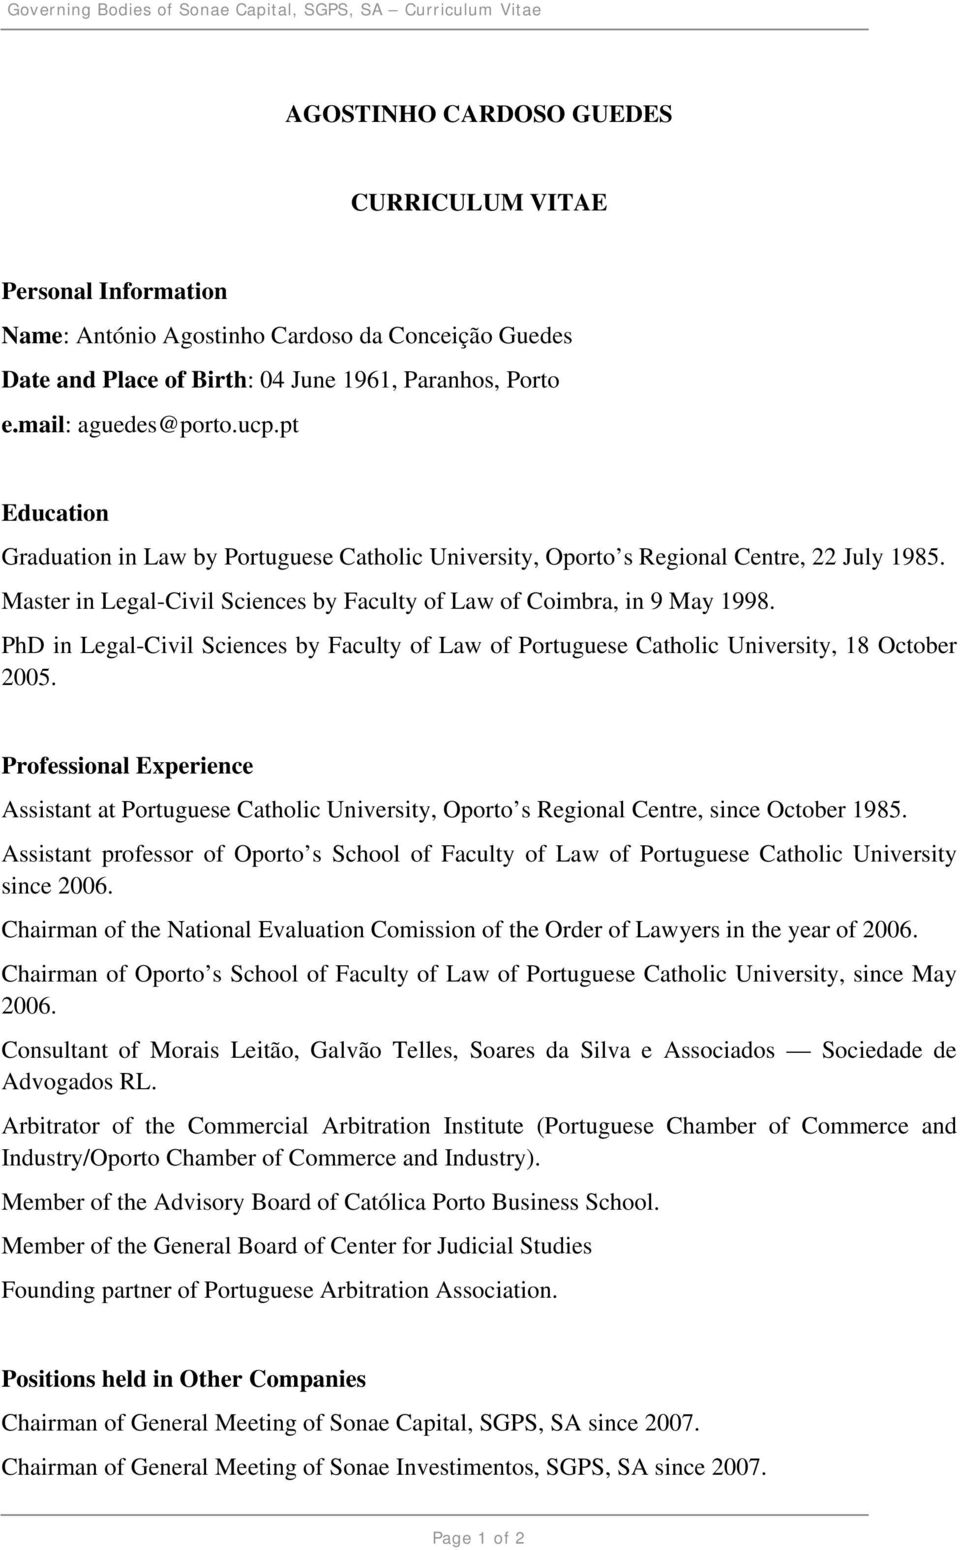 Master in Legal-Civil Sciences by Faculty of Law of Coimbra, in 9 May 1998. PhD in Legal-Civil Sciences by Faculty of Law of Portuguese Catholic University, 18 October 2005.